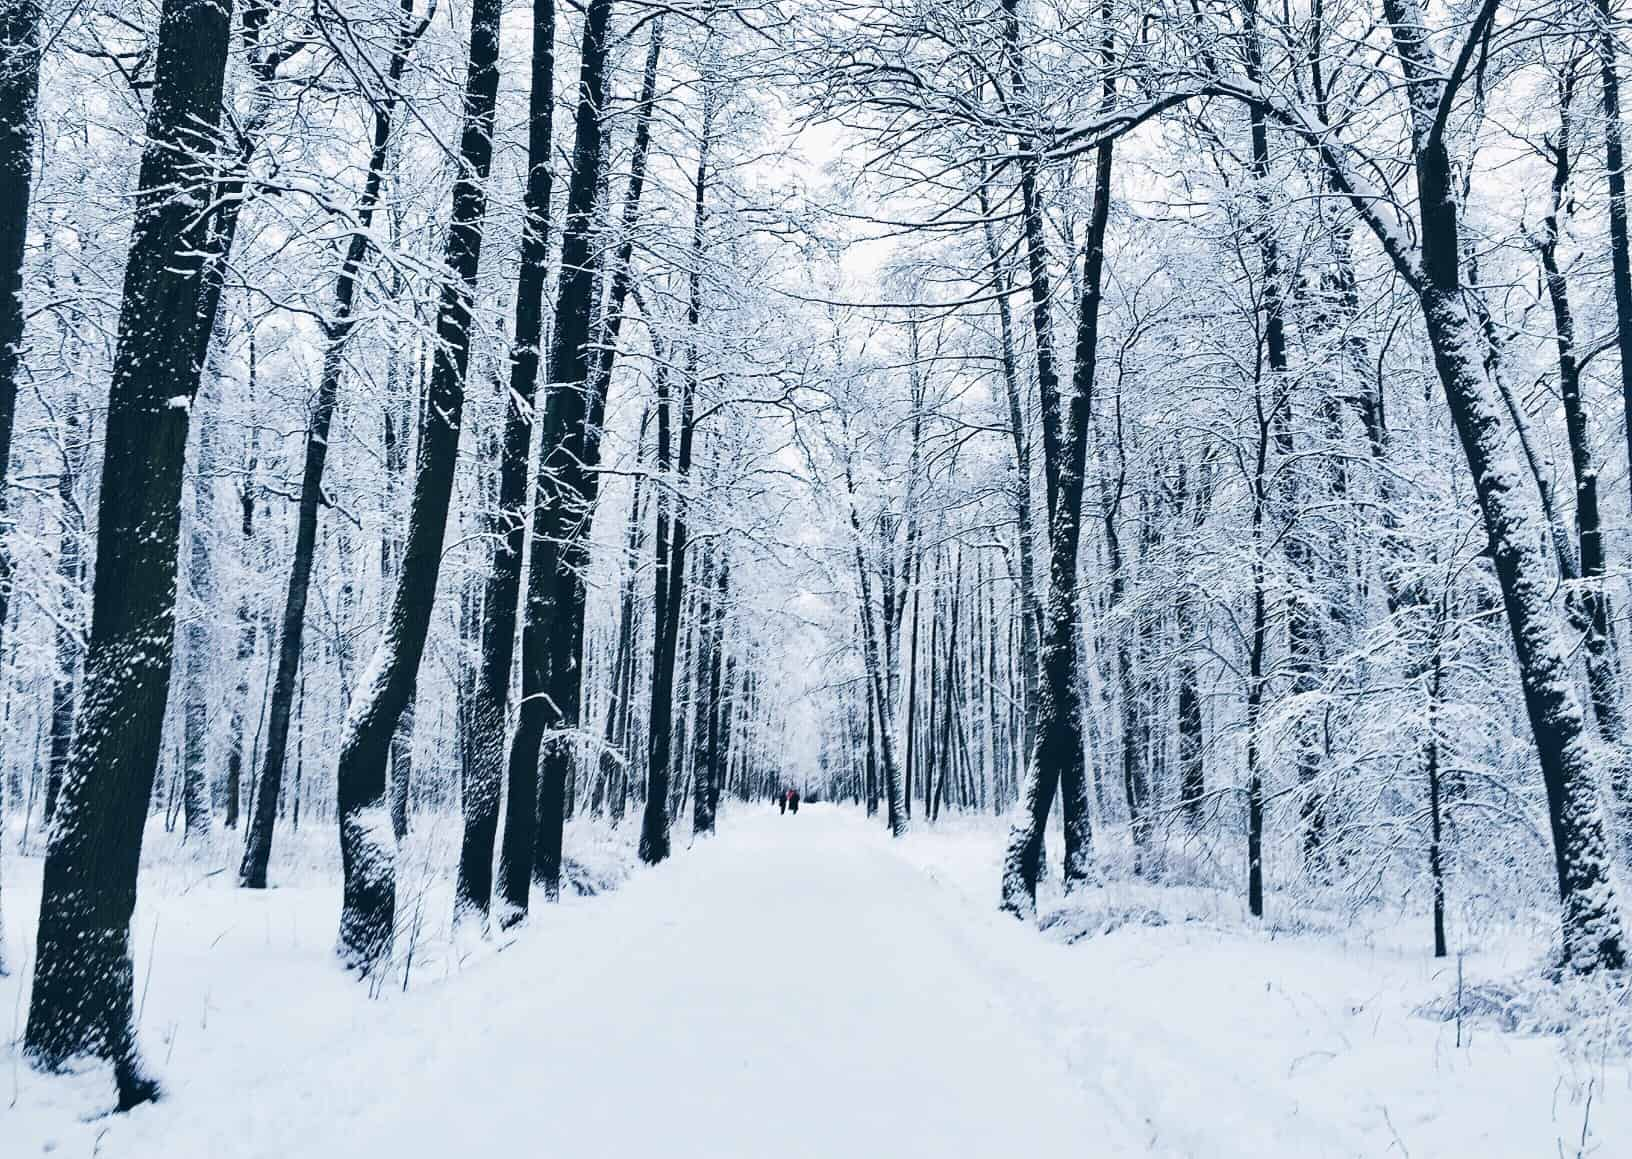 winter-park-tree-forest-forest-snow-snow-russia-trees-snowy-forests_t20_YQbxjW